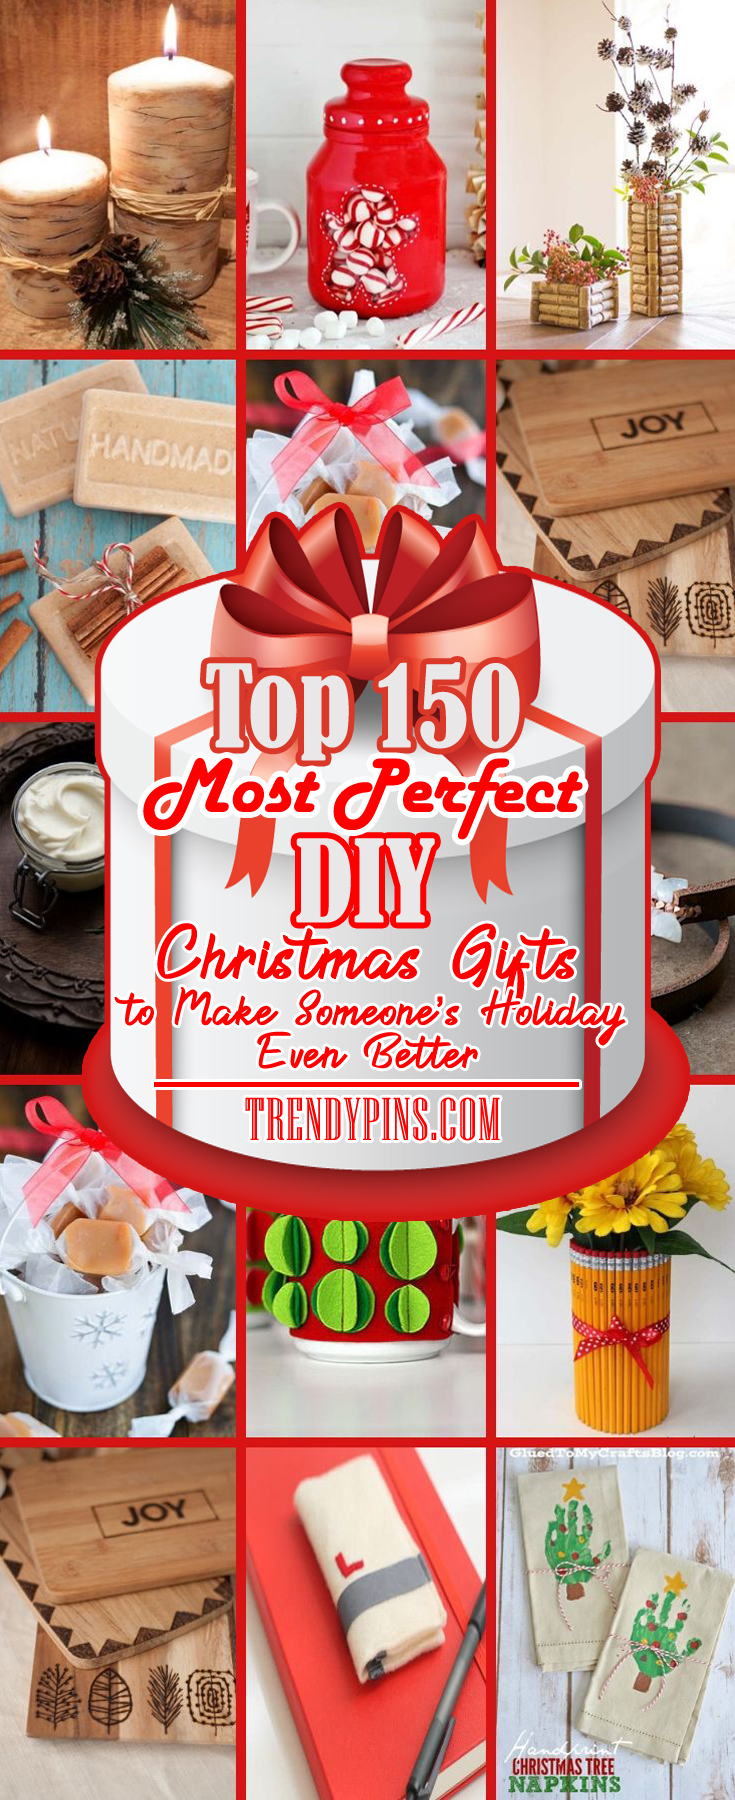 Top 150 Most Perfect DIY Christmas Gifts to Make Someones Even Better